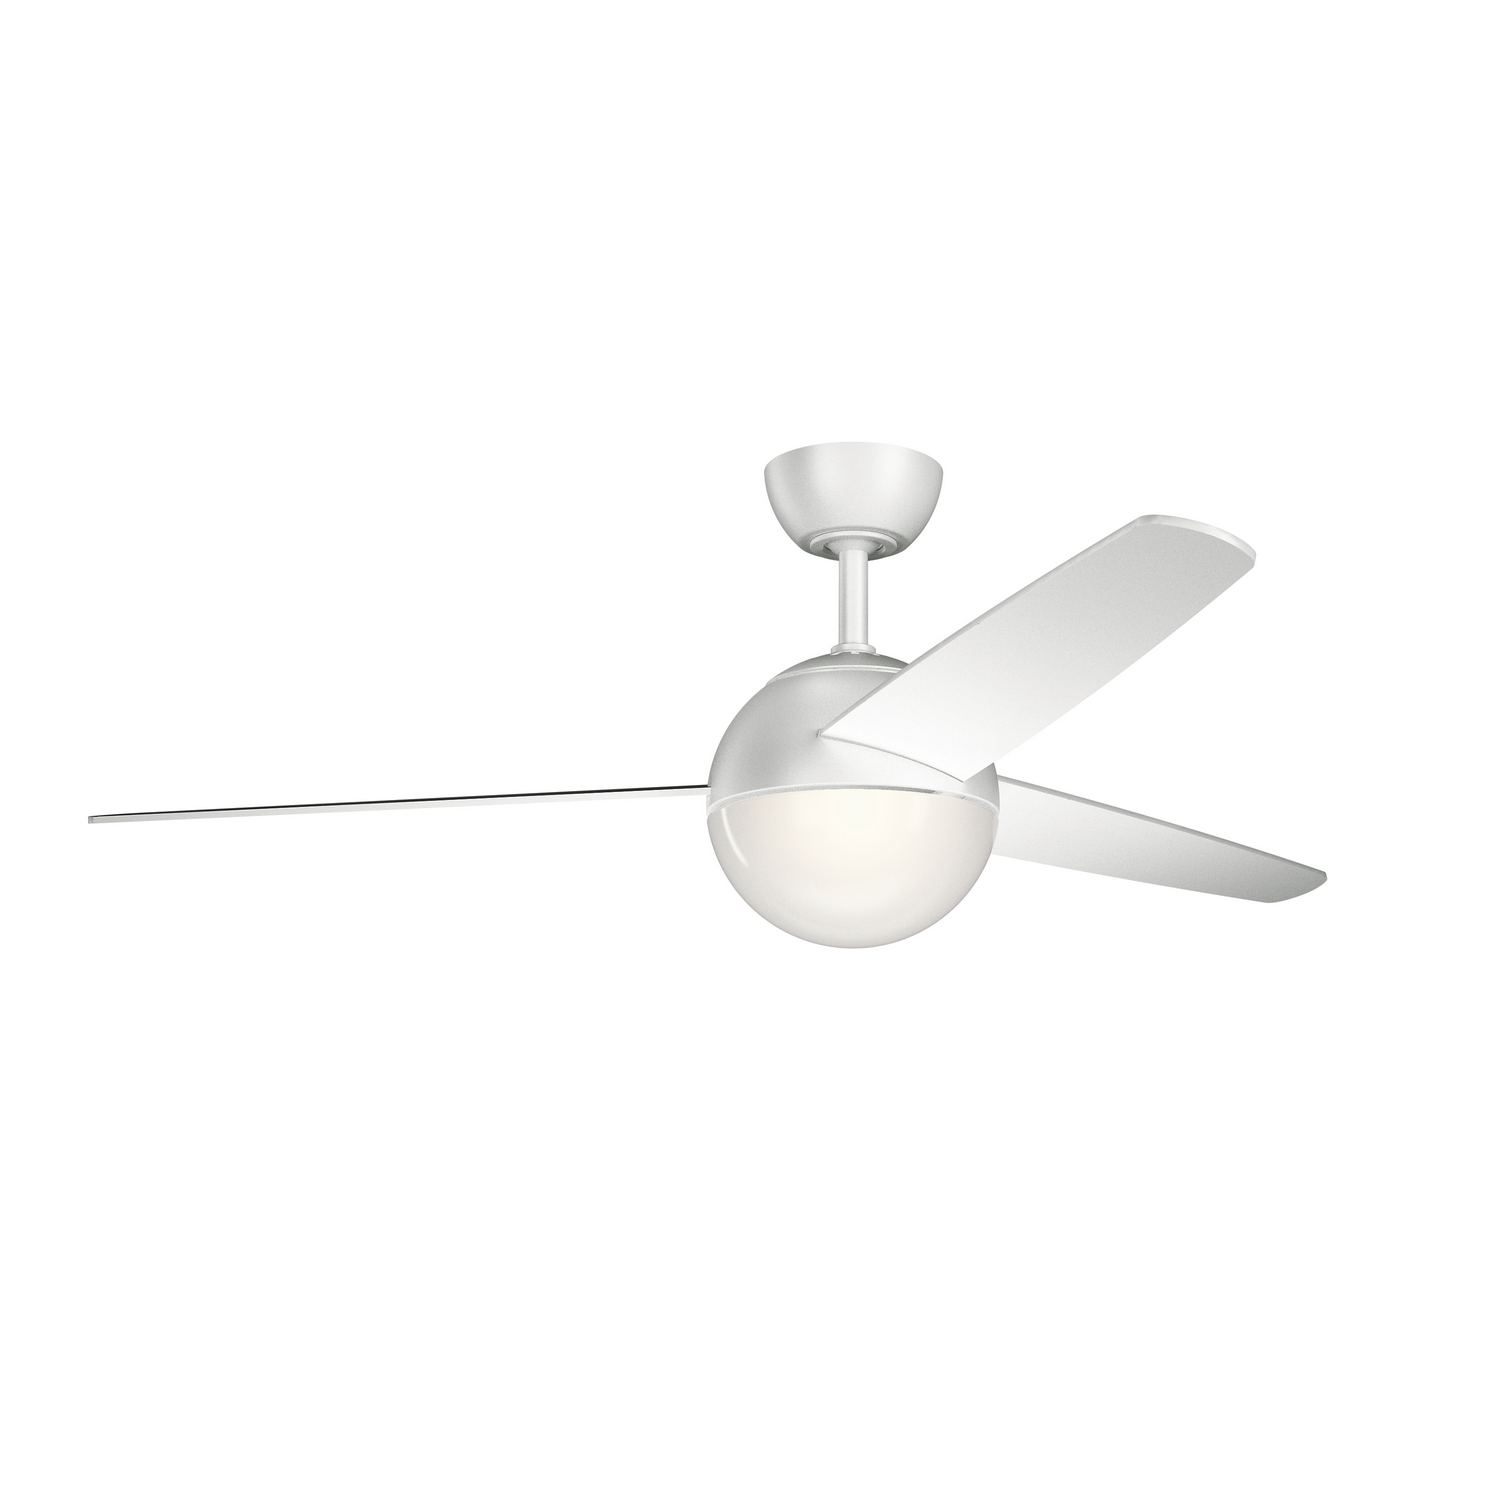 56 inchCeiling Fan from the Bisc collection by Kichler 300710MWH